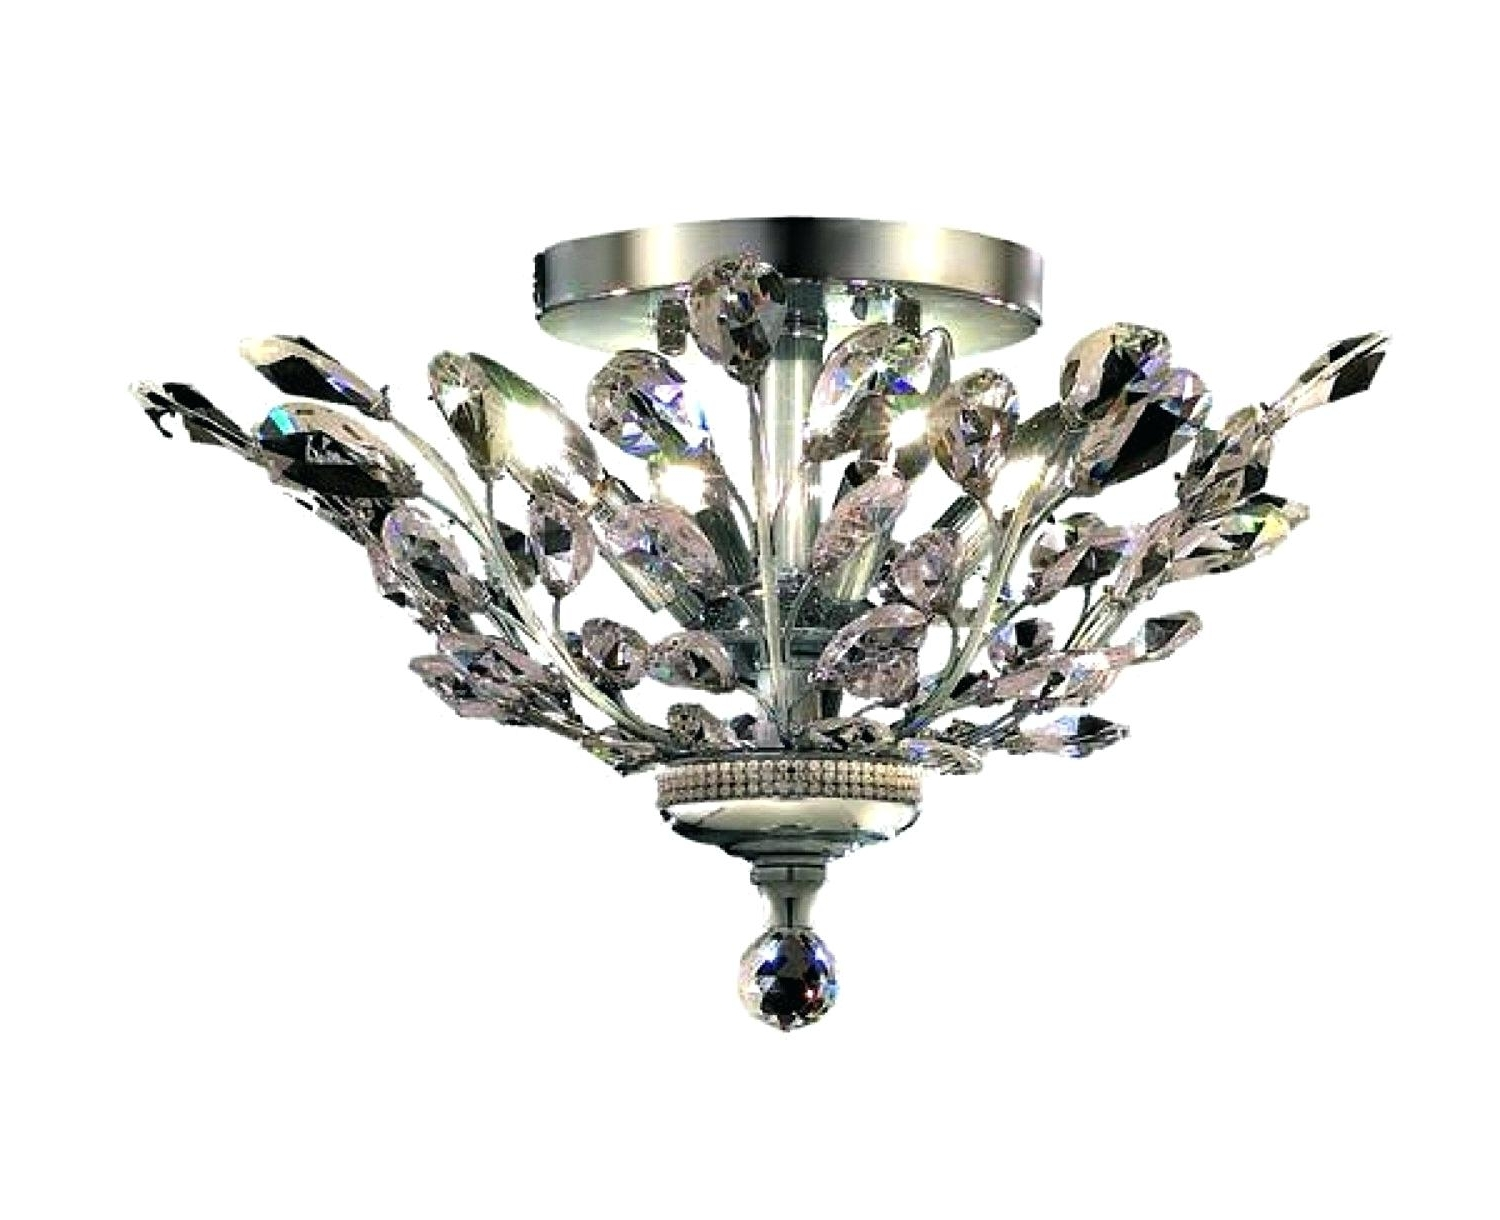 Most Popular Flush Fitting Chandelier For Bathroom Ceiling Lights Flush Fitting Chandelier Hanging Light (View 14 of 20)